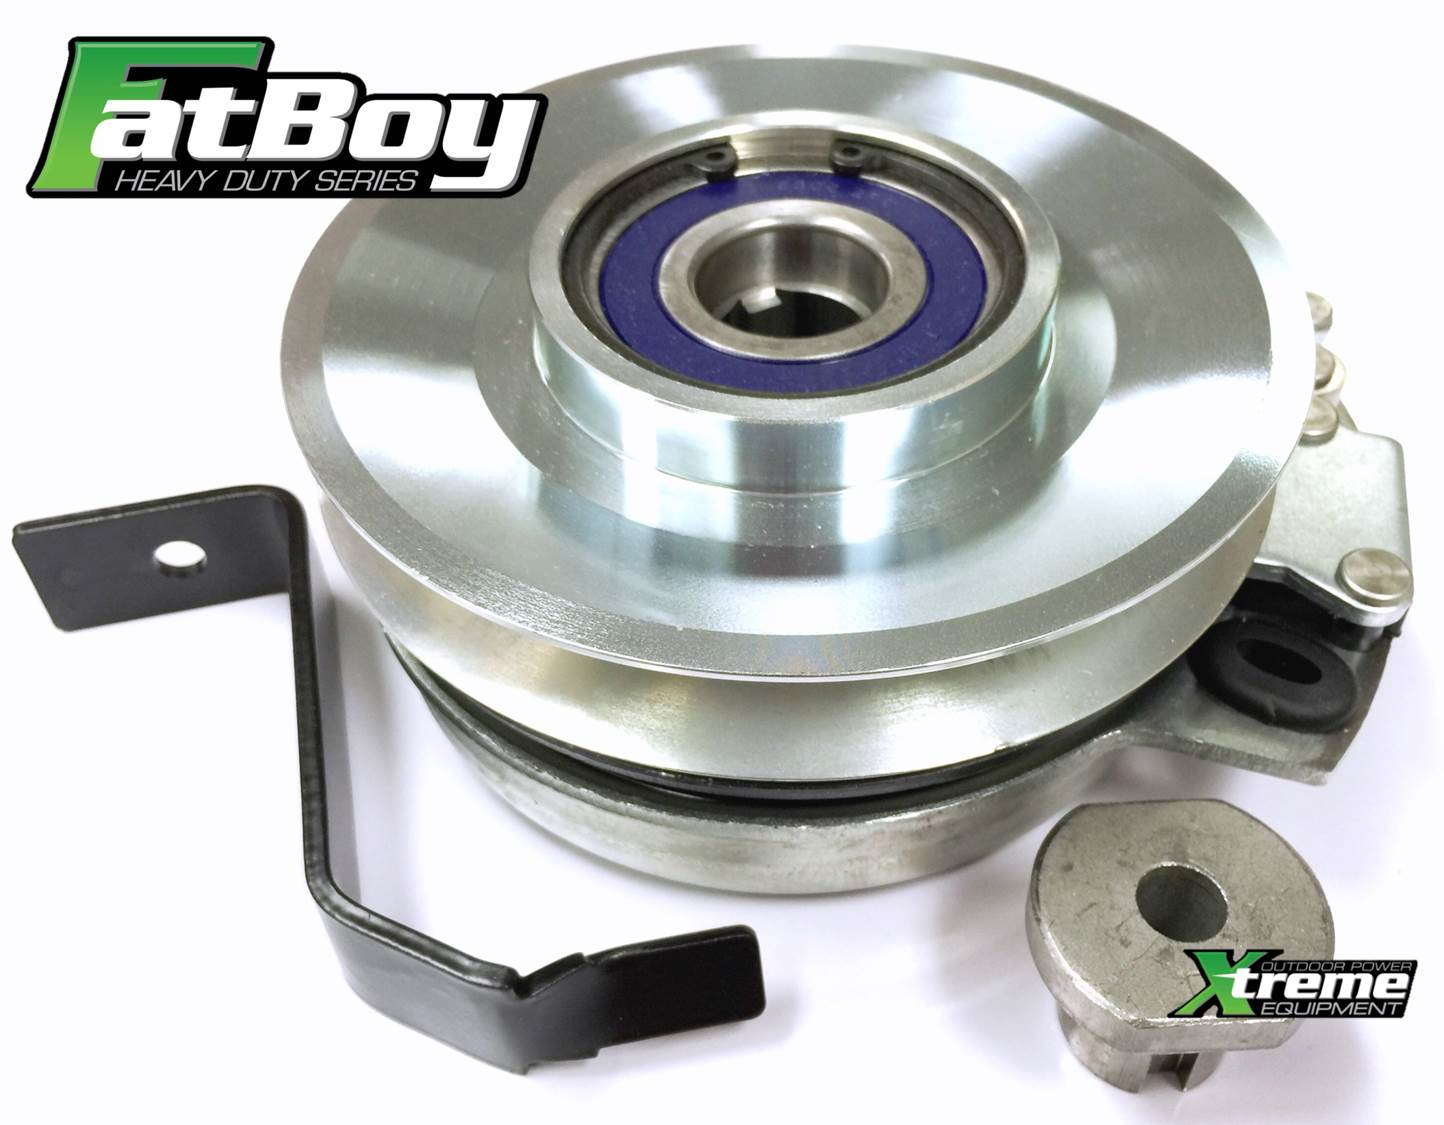 Replaces John Deere PTO Clutch G110 & S240 Lawn Tractors GY20878 -OEM UPGRADE by Xtreme Mower Clutches%2C Warner Upgrade